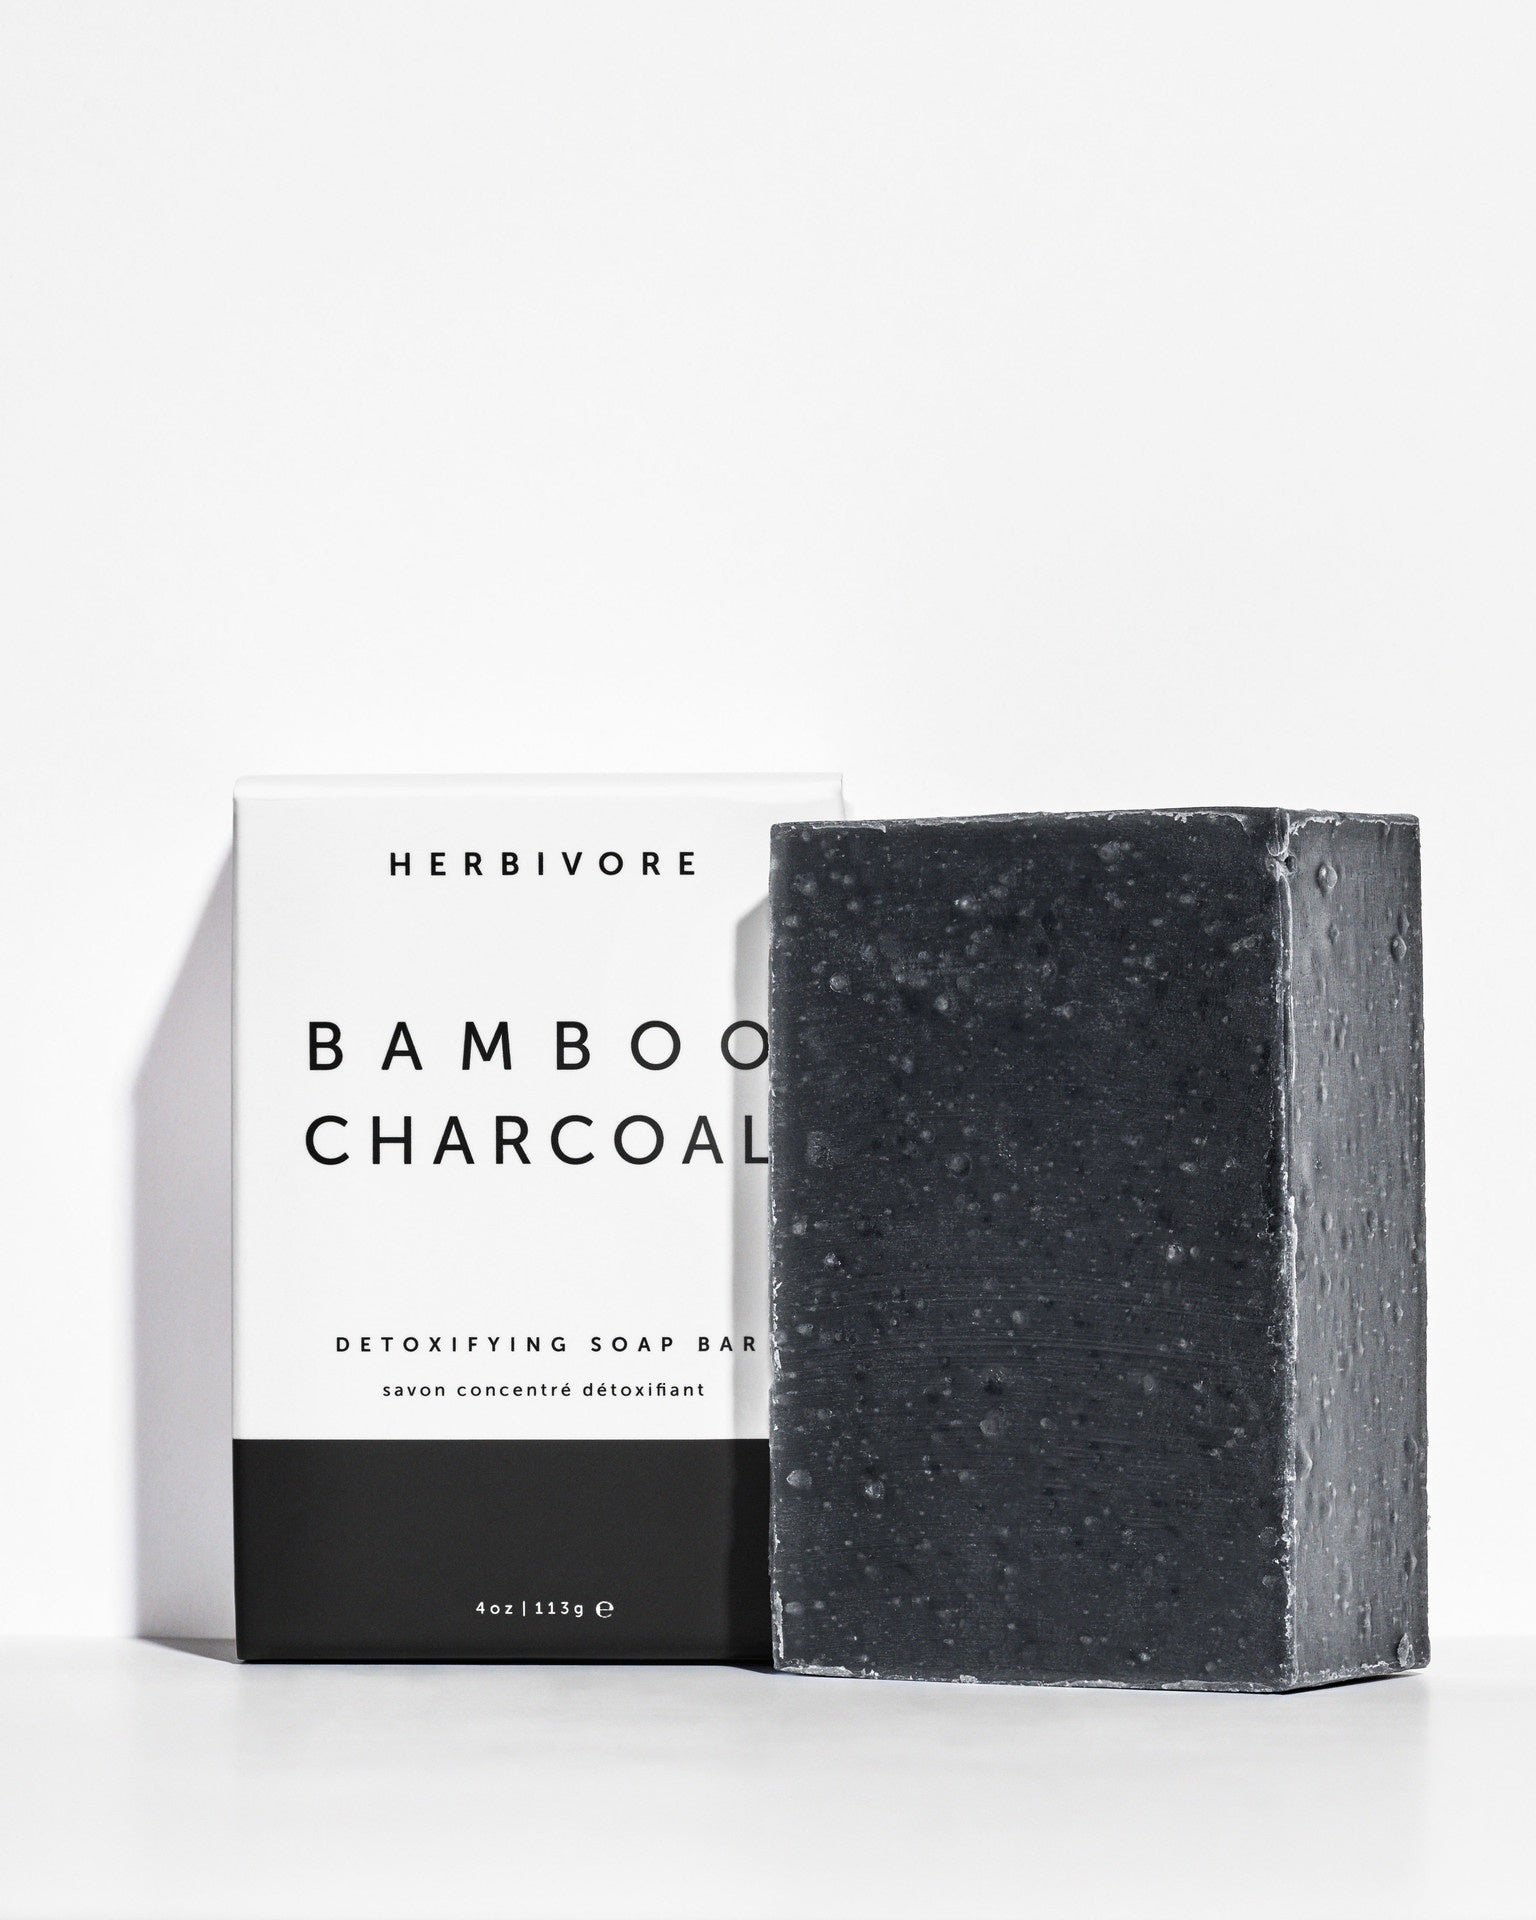 Bamboo Charcoal Cleansing Bar Soap by Herbivore Botanicals